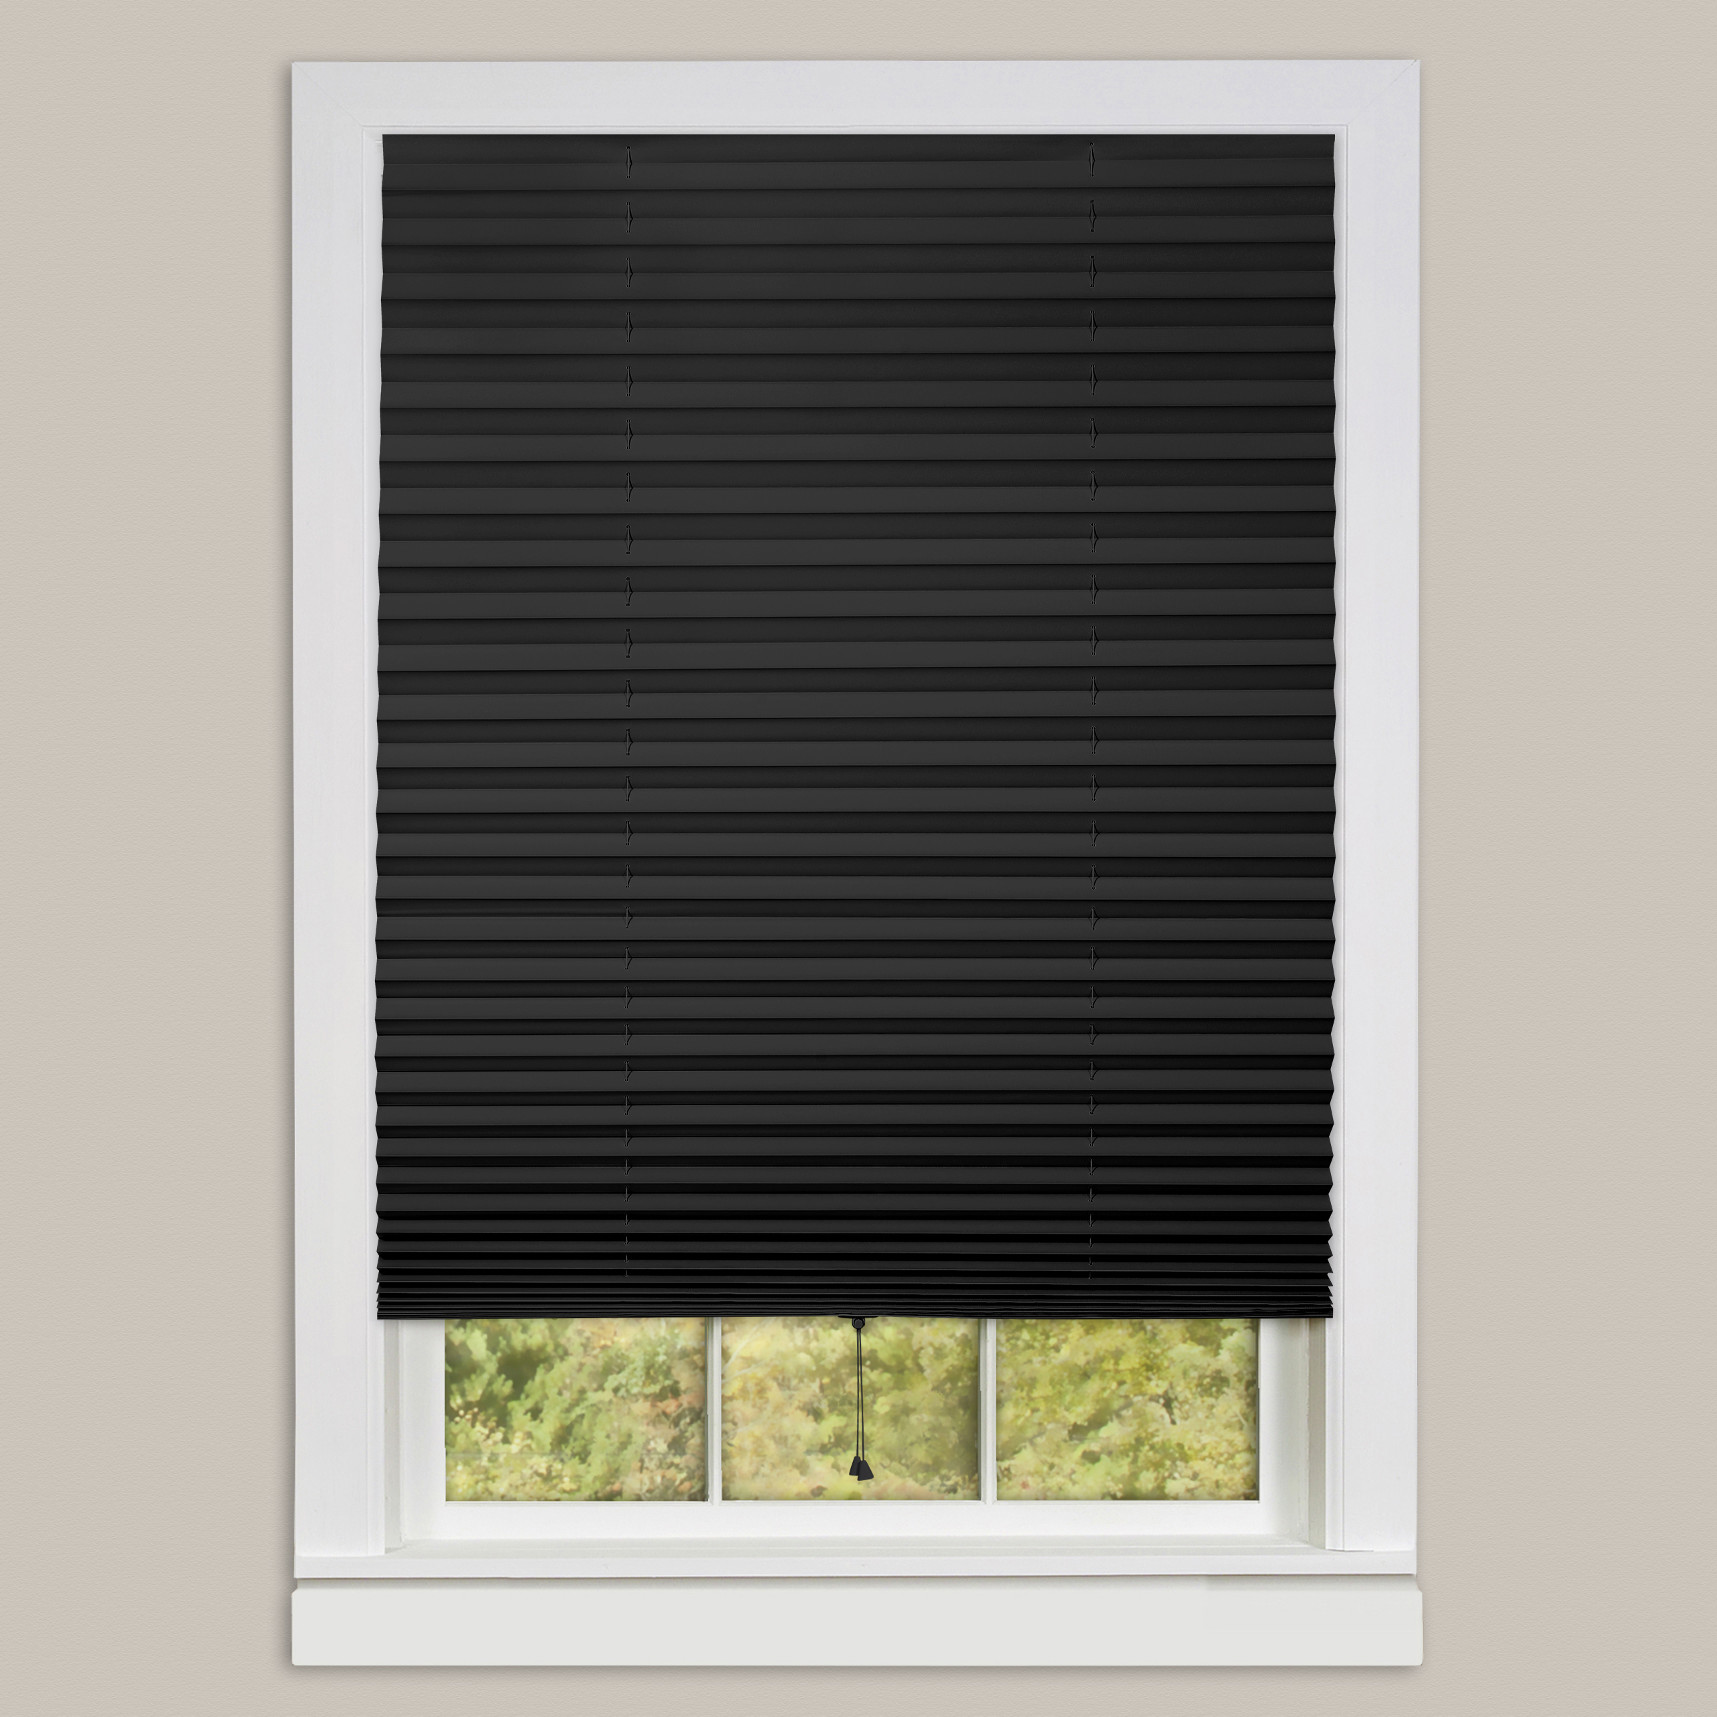 Menards Michigan | Menards Window Blinds | Cheap Blinds For Windows